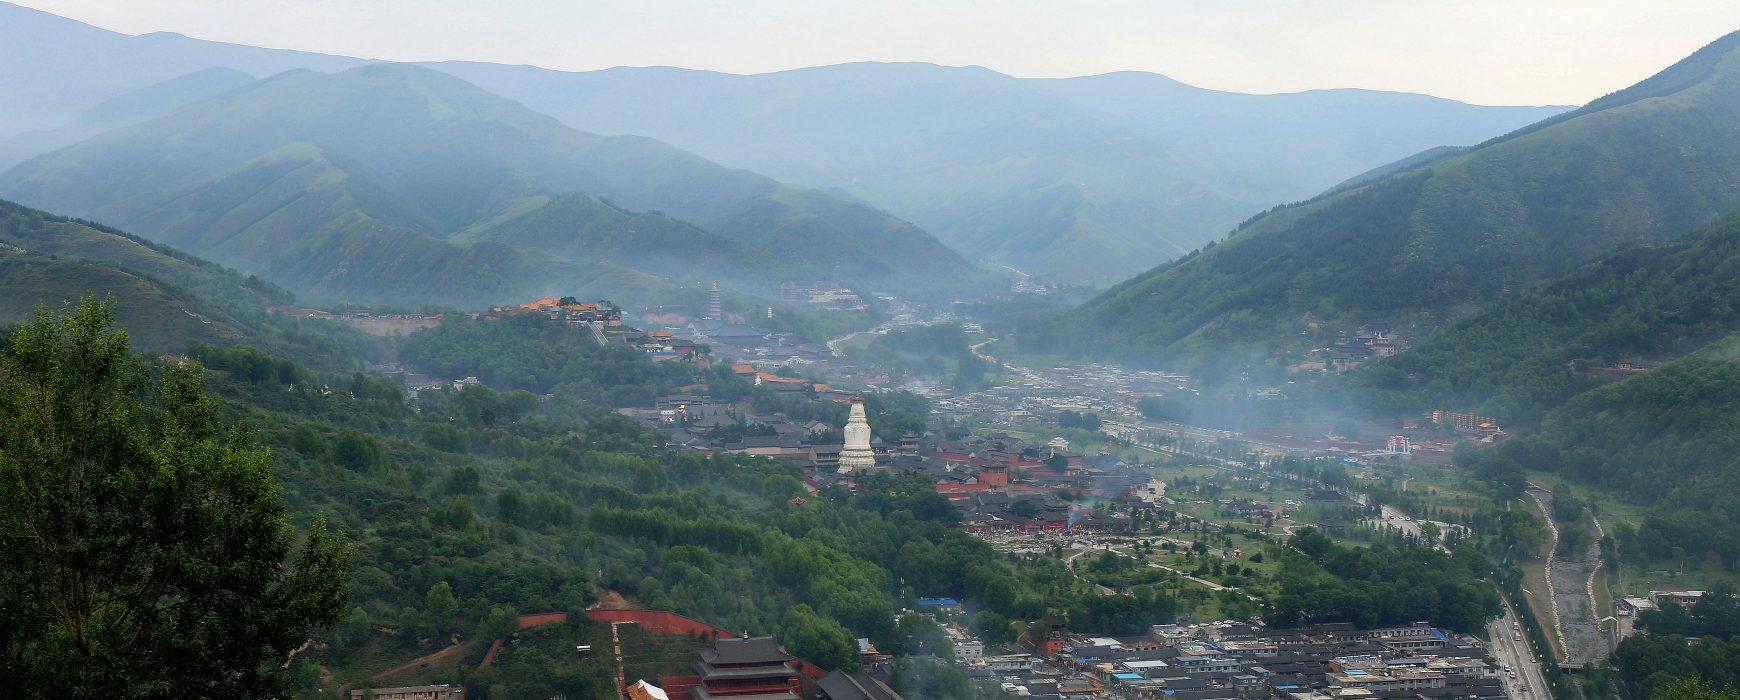 An International and Intensive Program on Buddhism and East Asian Religions at Mount Wutai